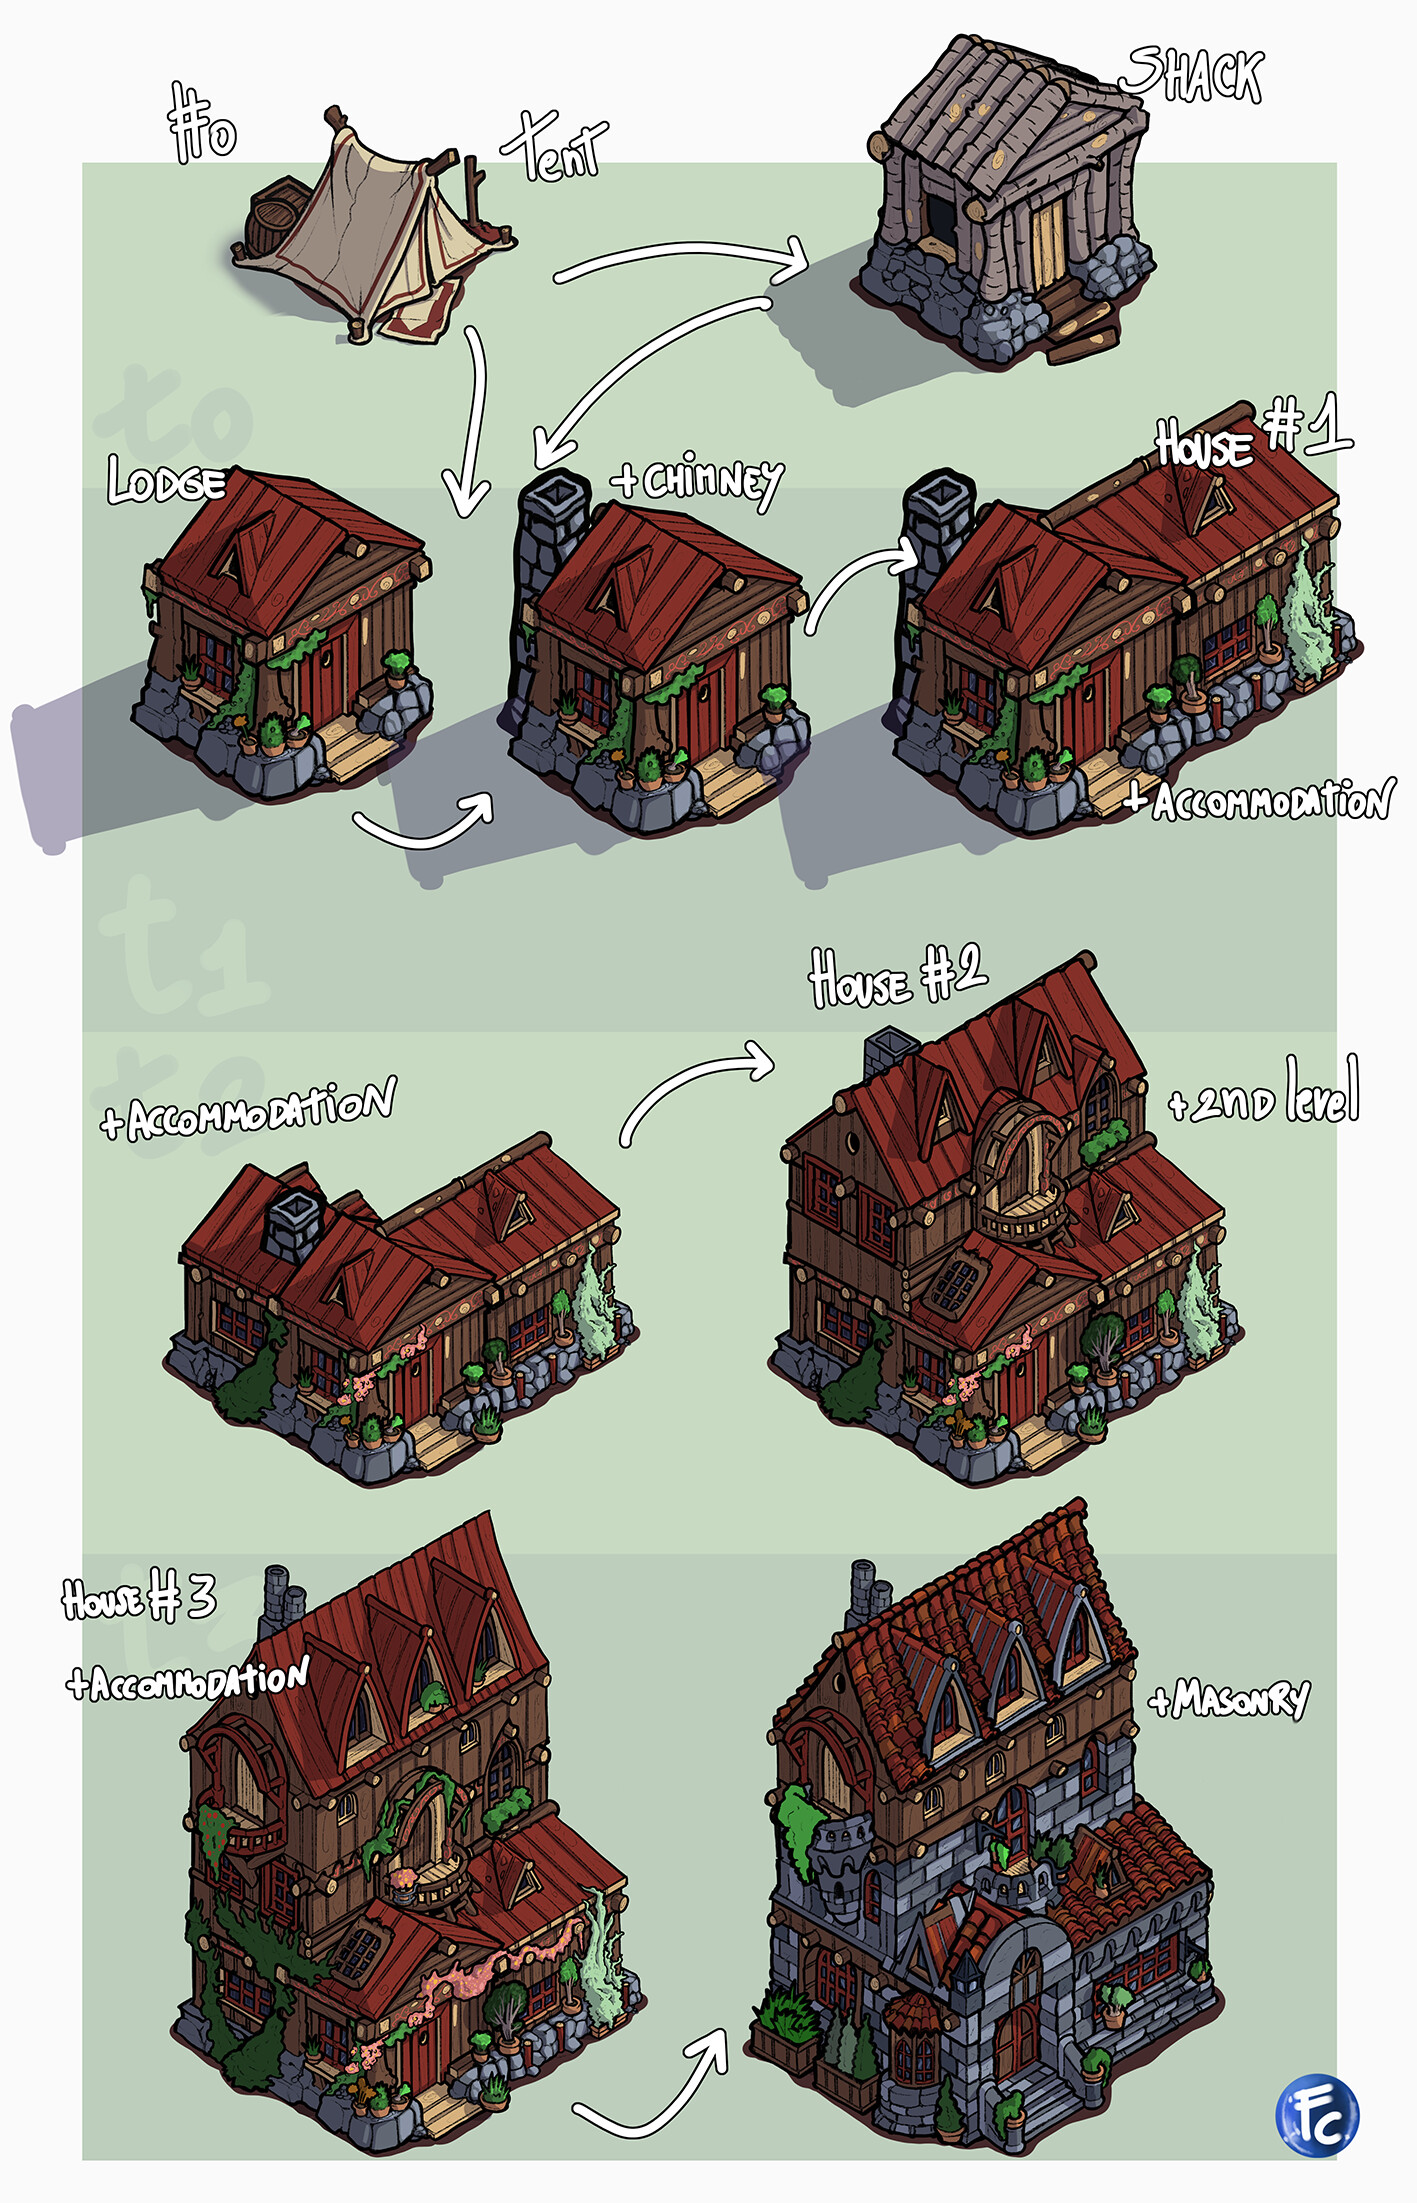 House development sheet, from base level to maximum one. The roof's colour is changeable, this on for example is red.